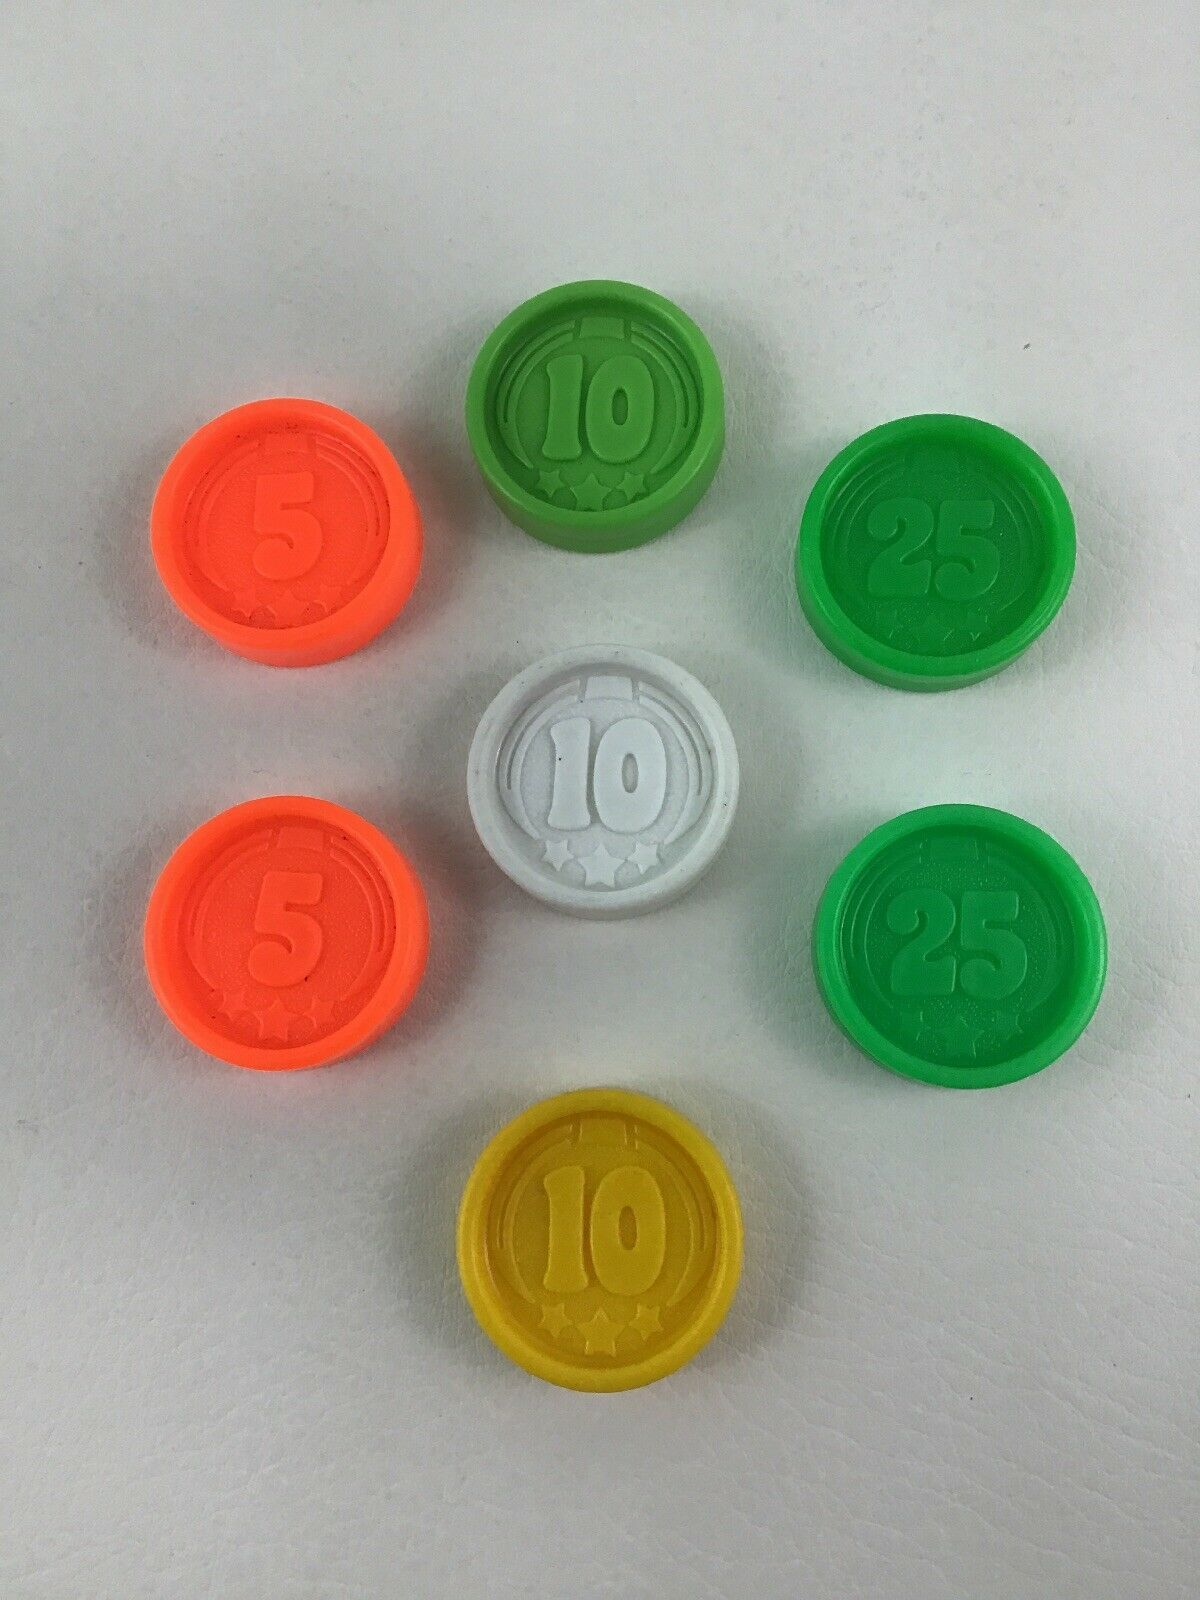 Fisher Price Coins 7pc Lot For Waitress Tray Coin Dispenser Vintage 1984